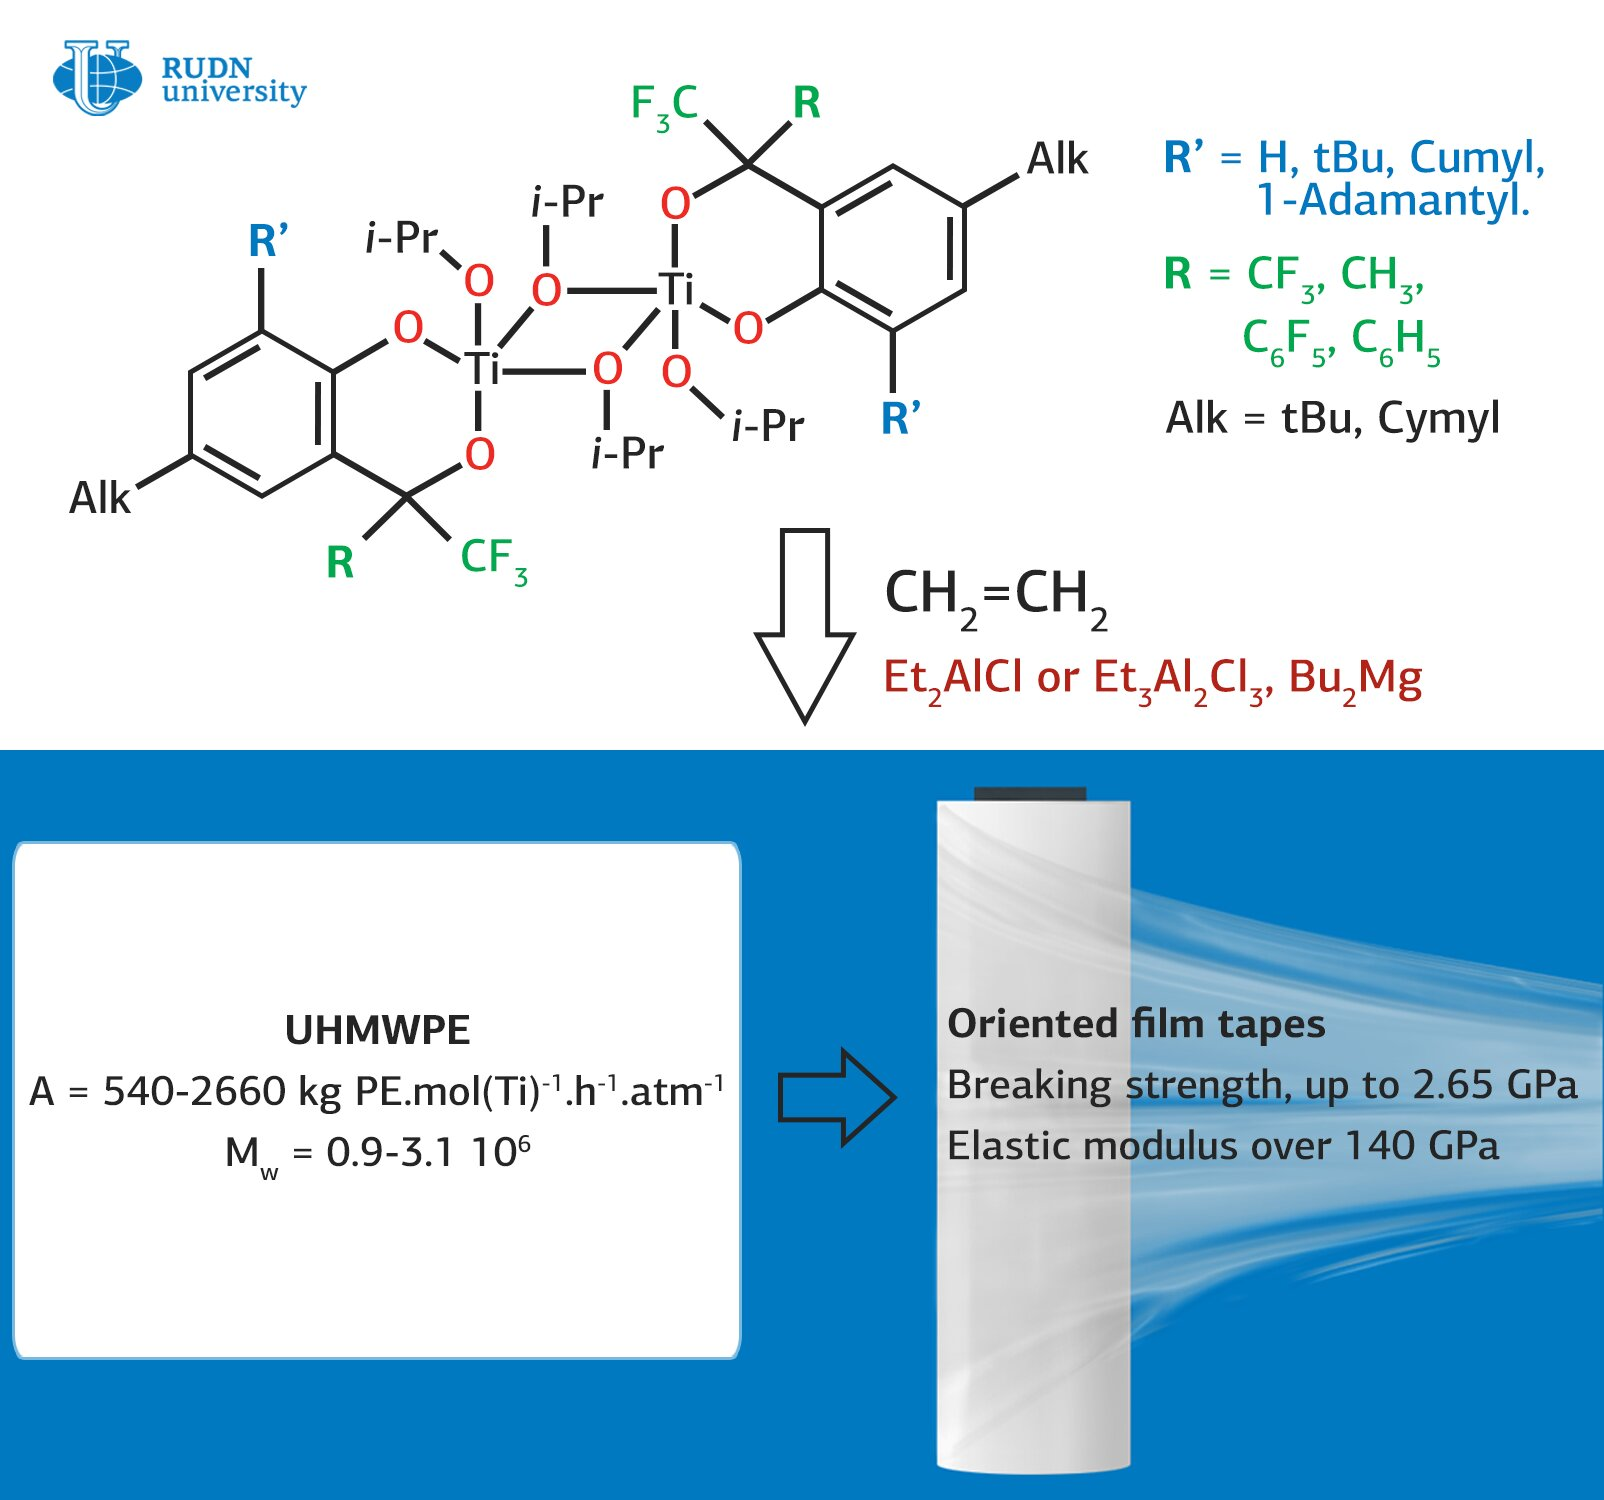 A study of catalysts for synthesizing ultra-high molecular weight polyethylene